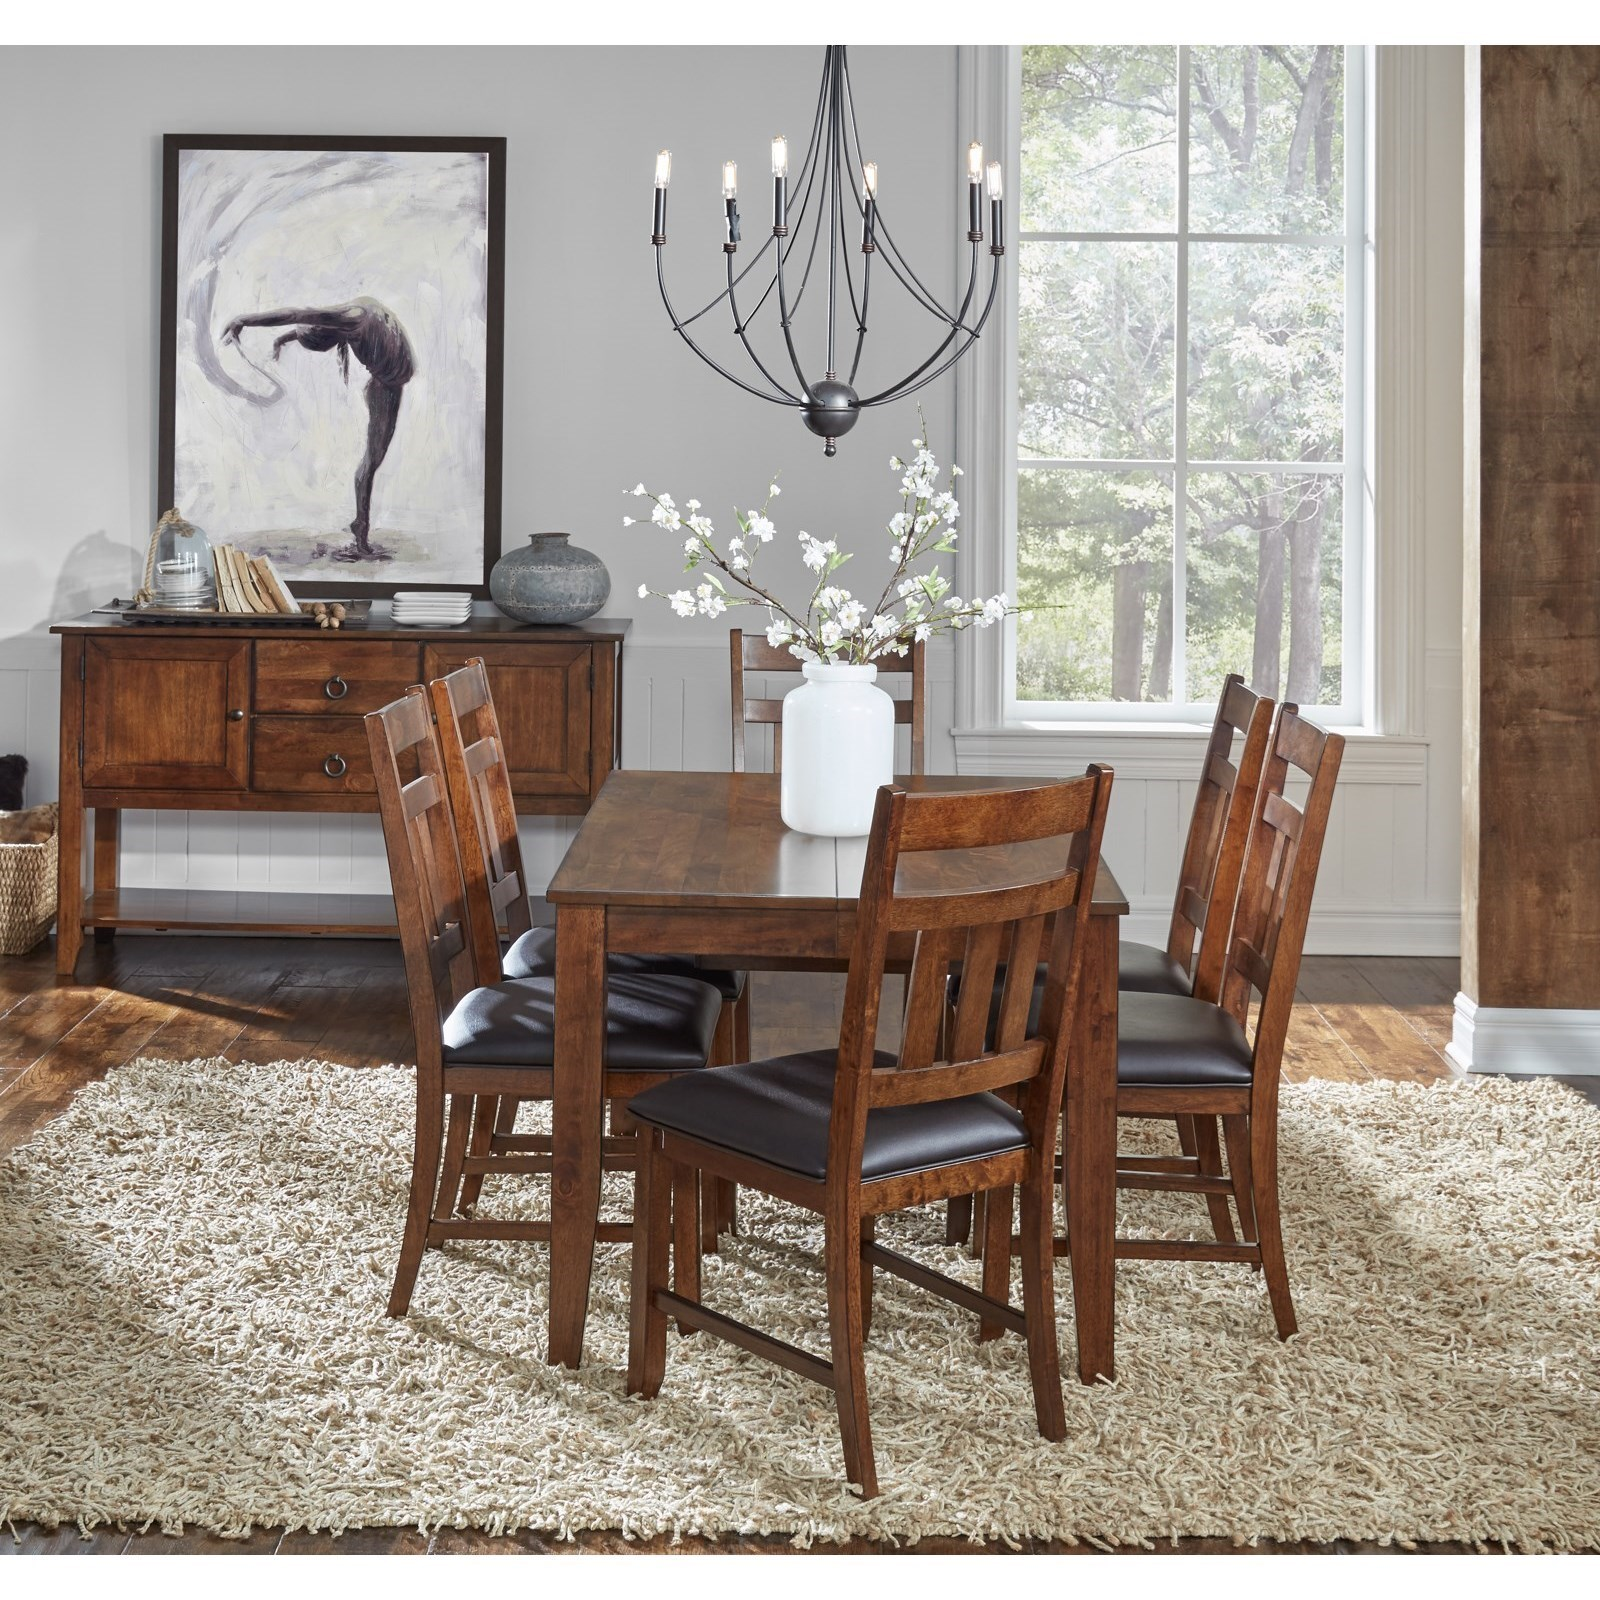 Mason 7 Piece Square Butterfly Table And Chair Dining Set By AAmerica